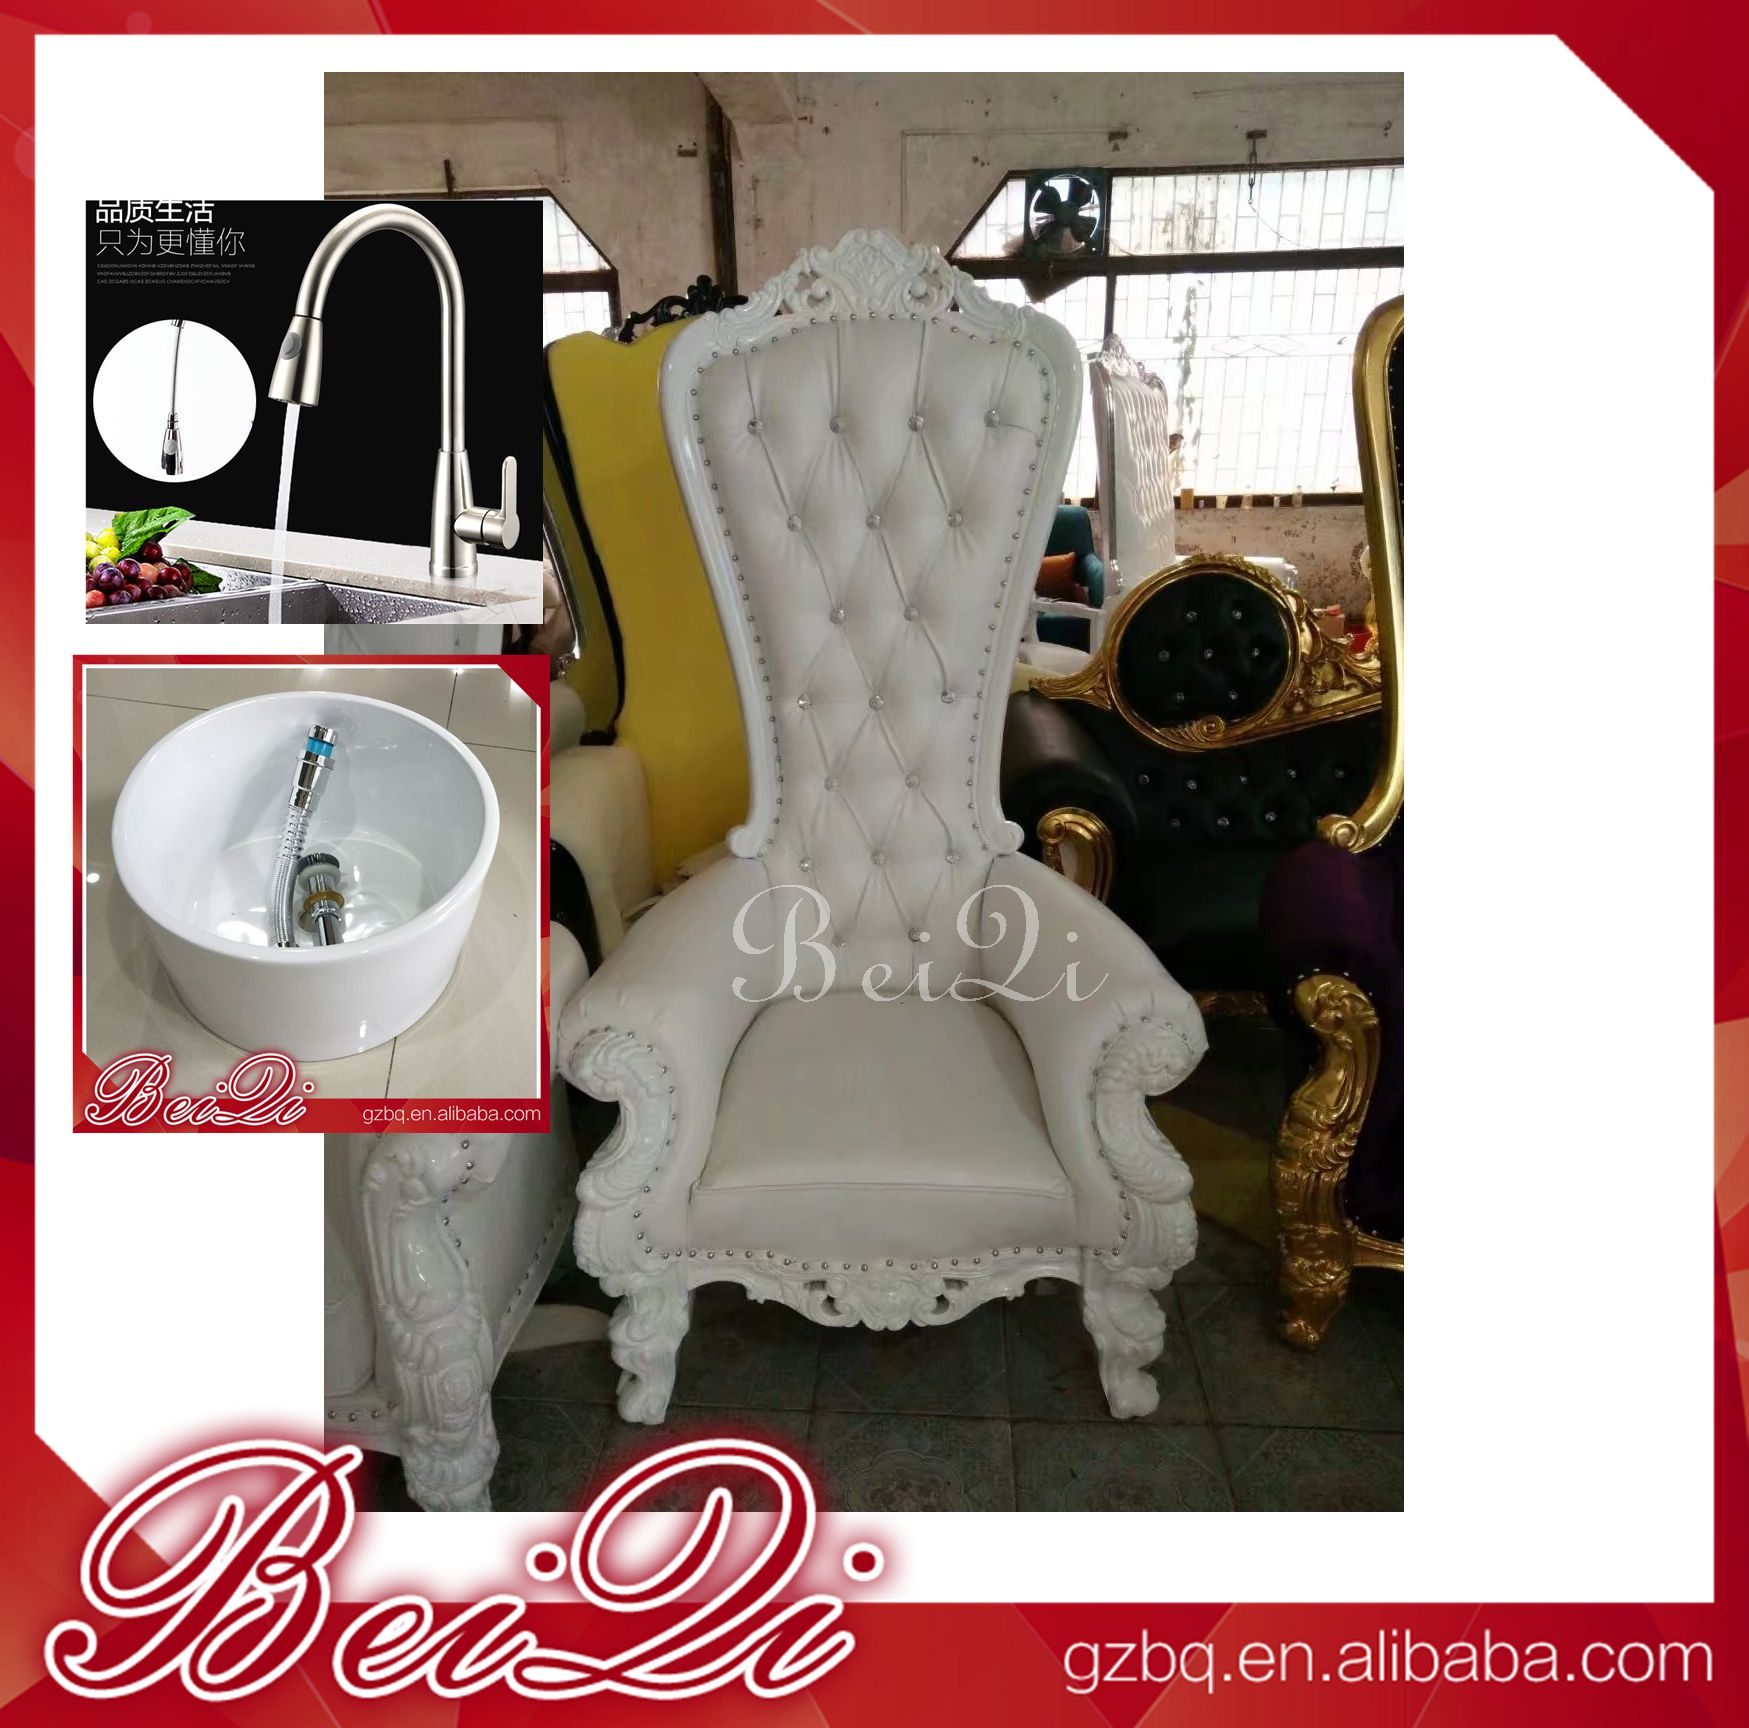 Baby Pedicure Chair Baby Pedicure Chair Suppliers and